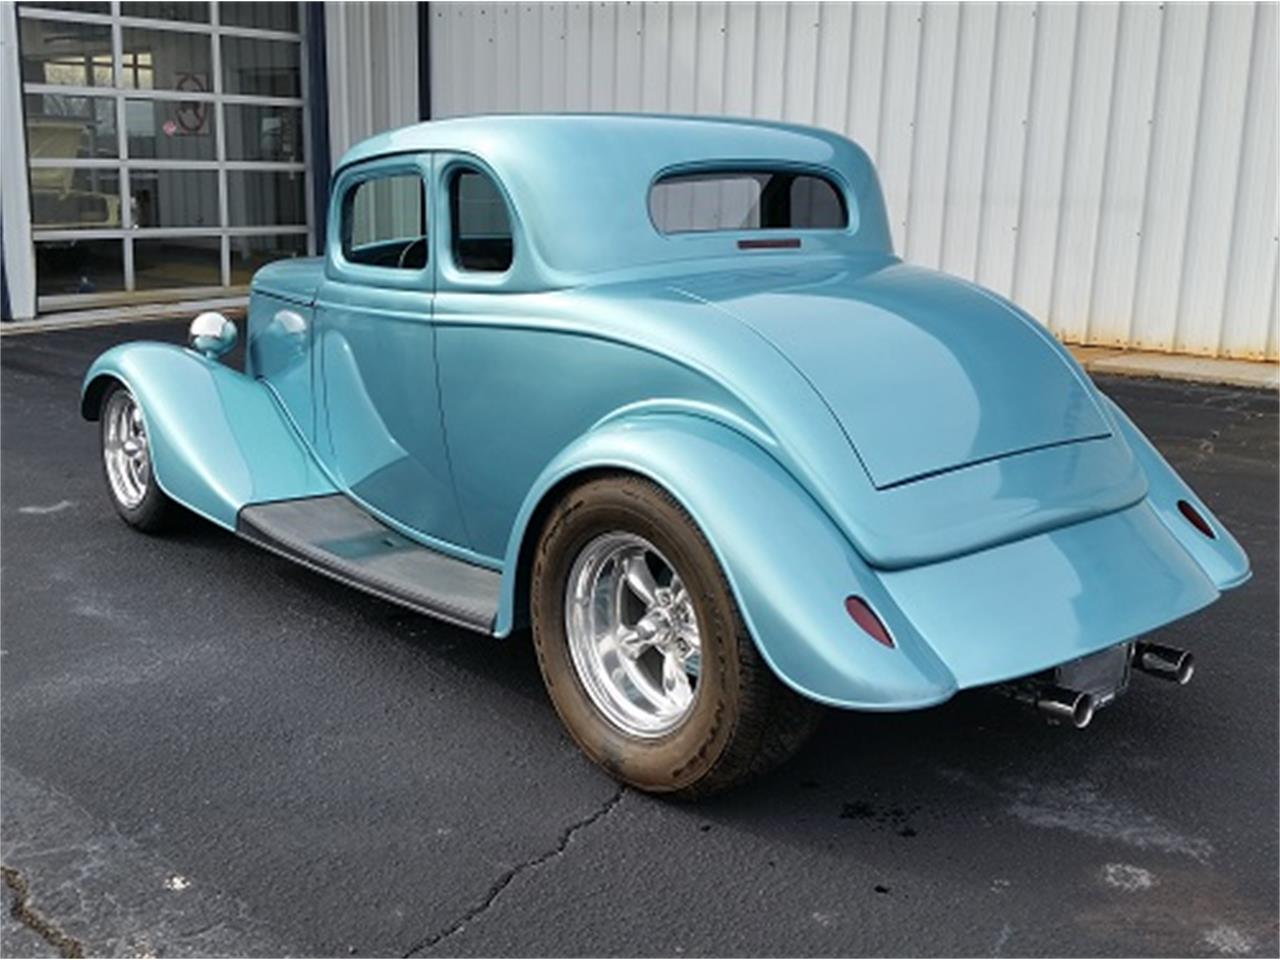 Large Picture of Classic '34 Ford Coupe - $37,500.00 - KUCX